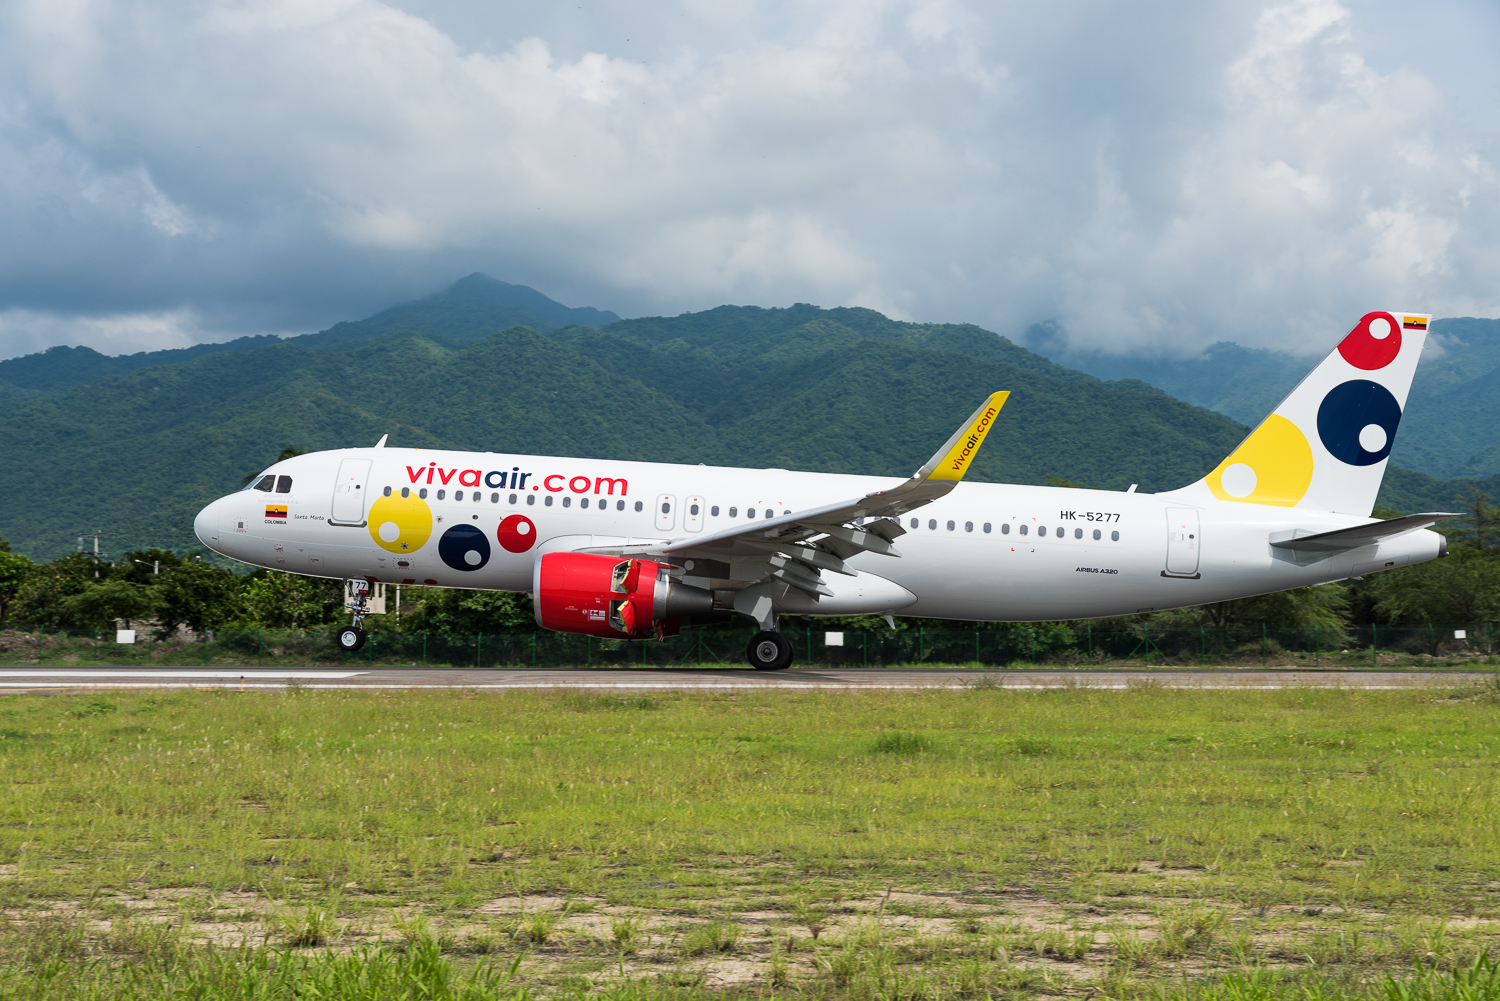 Colombia's Viva Air mines data to improve air travel